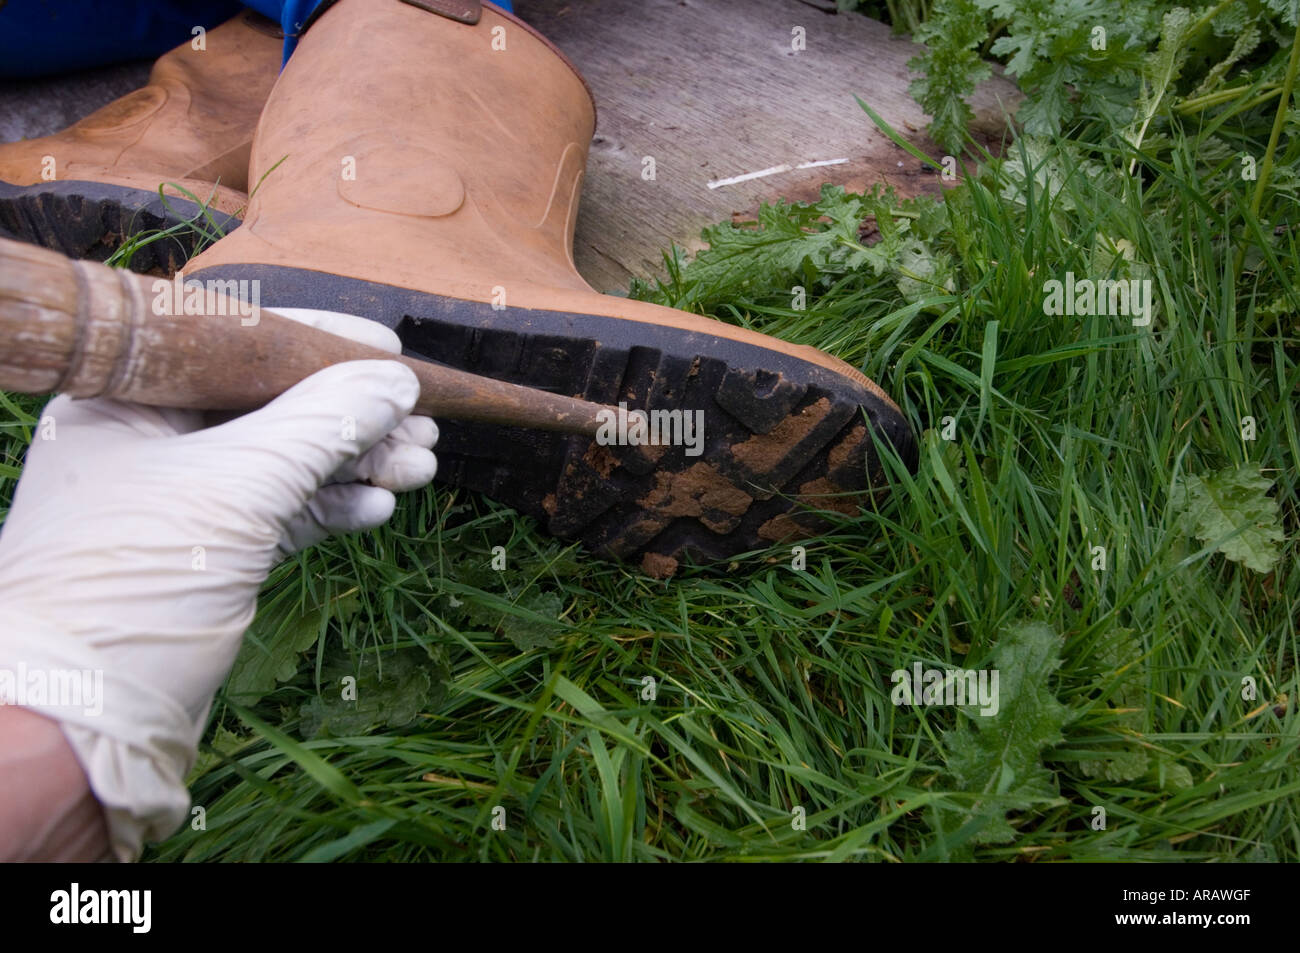 Forensic scientist collecting soil sample from boots of deceased. - Stock Image